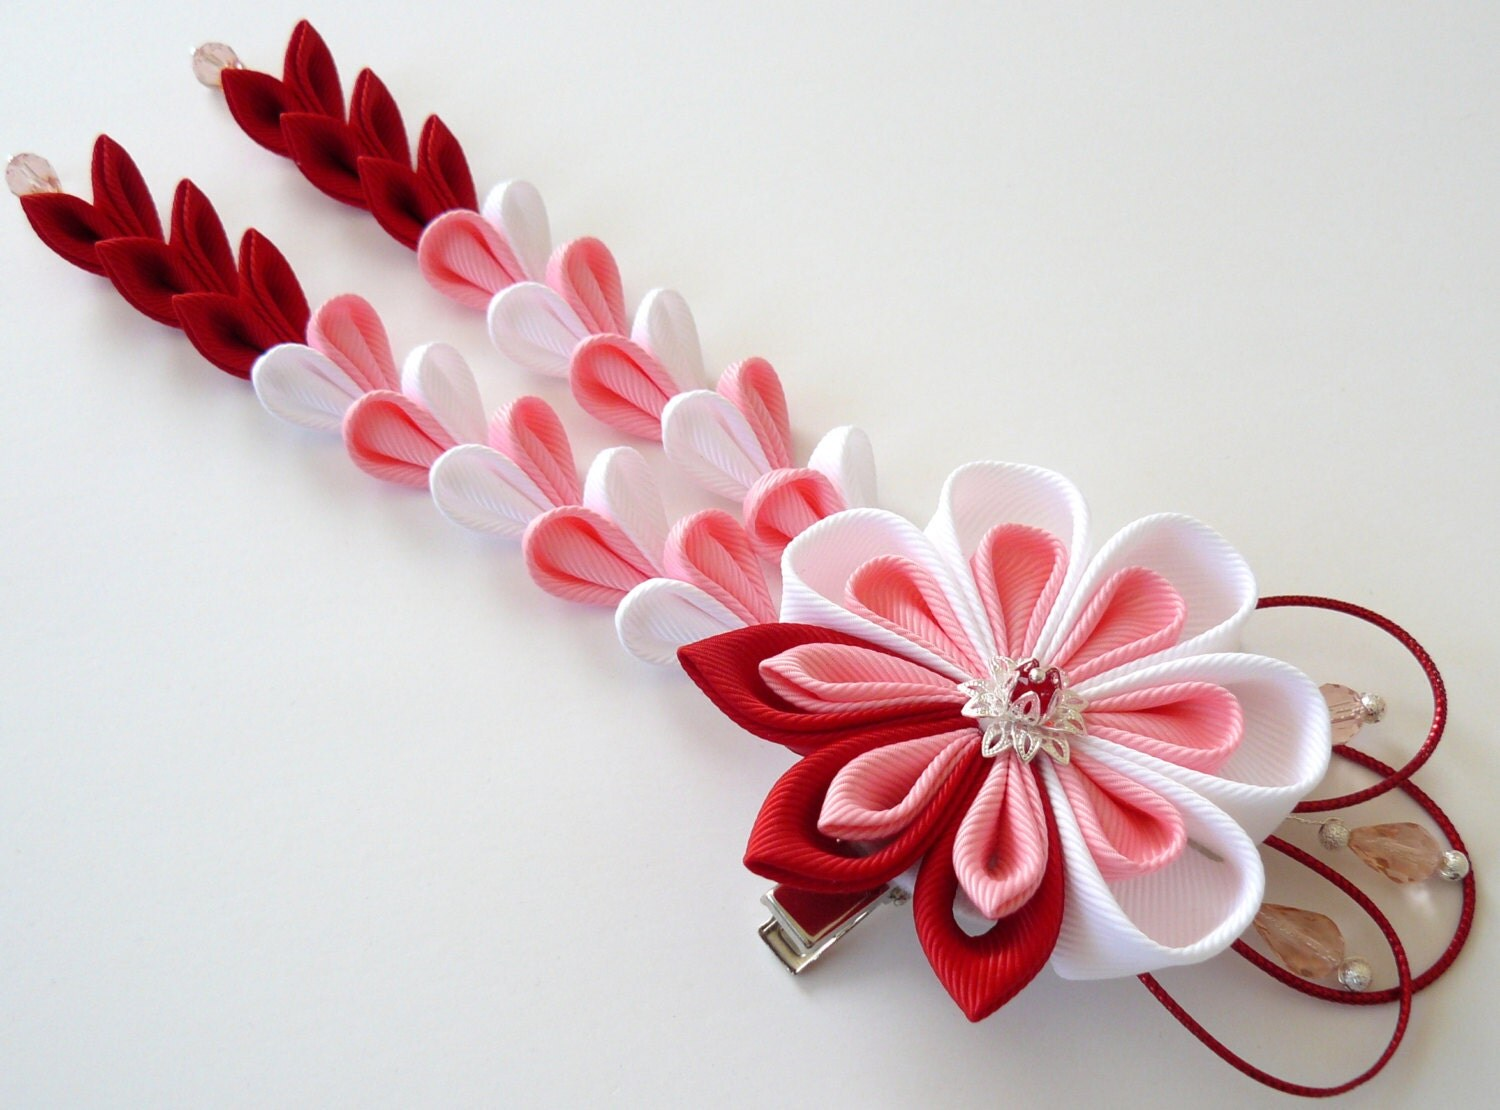 Japanese hair ornaments - Kanzashi Flower Hair Clip With Falls Red Pink White Fabric Flower Red Pink White